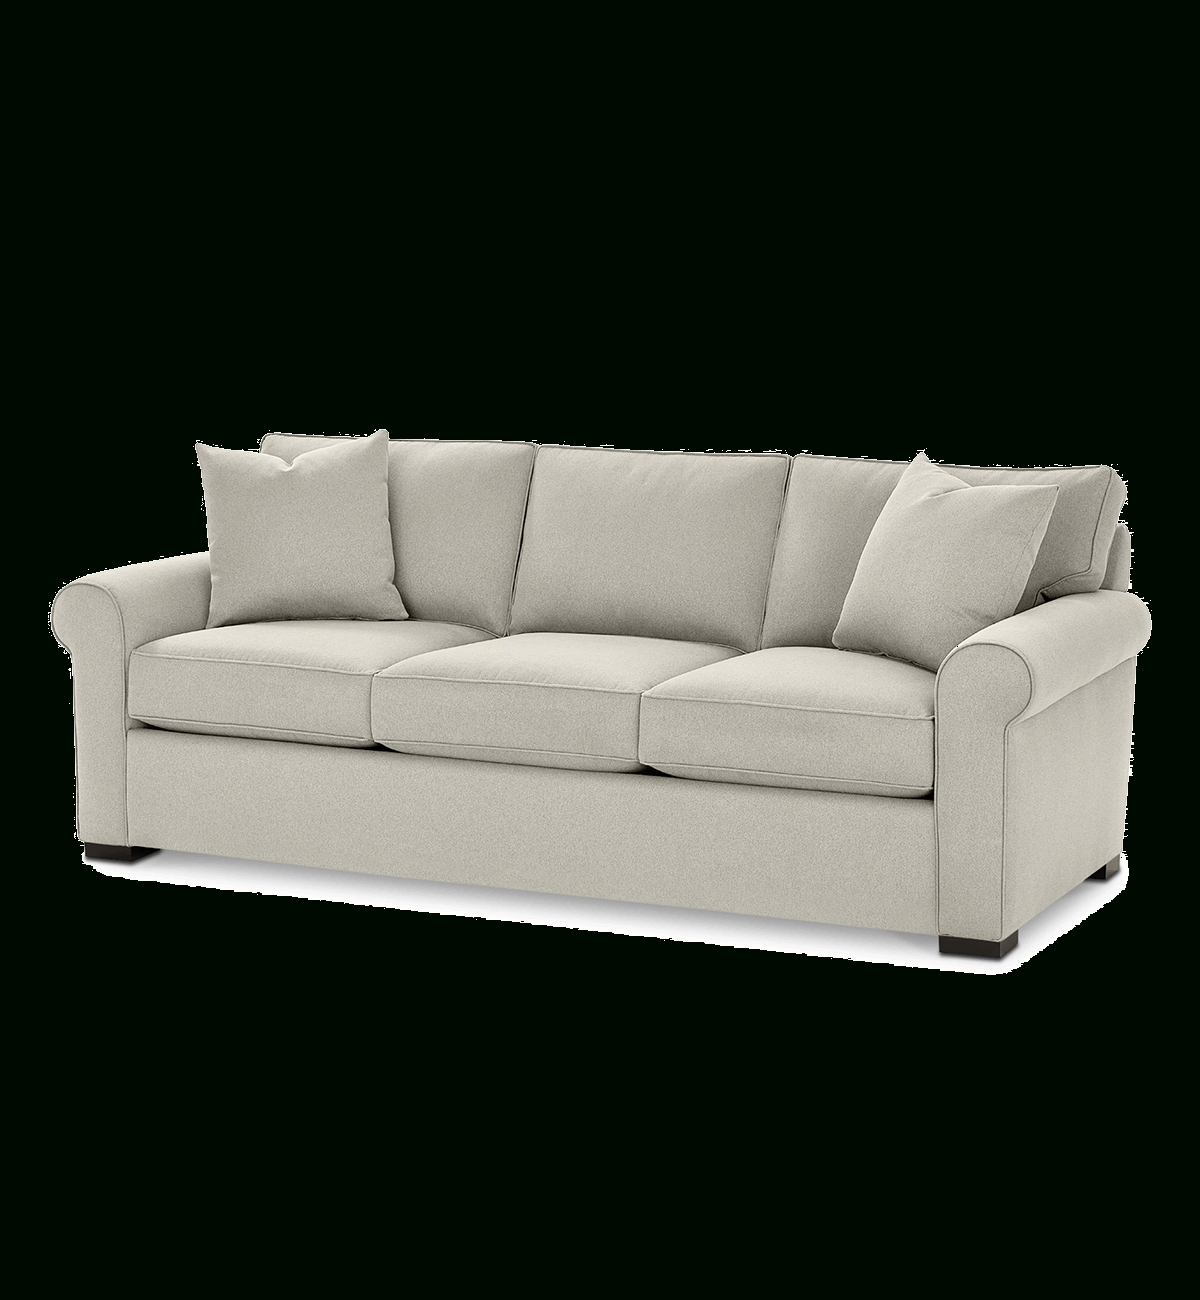 Couches And Sofas – Macy's Intended For Most Up To Date Macys Leather Sectional Sofas (View 7 of 15)